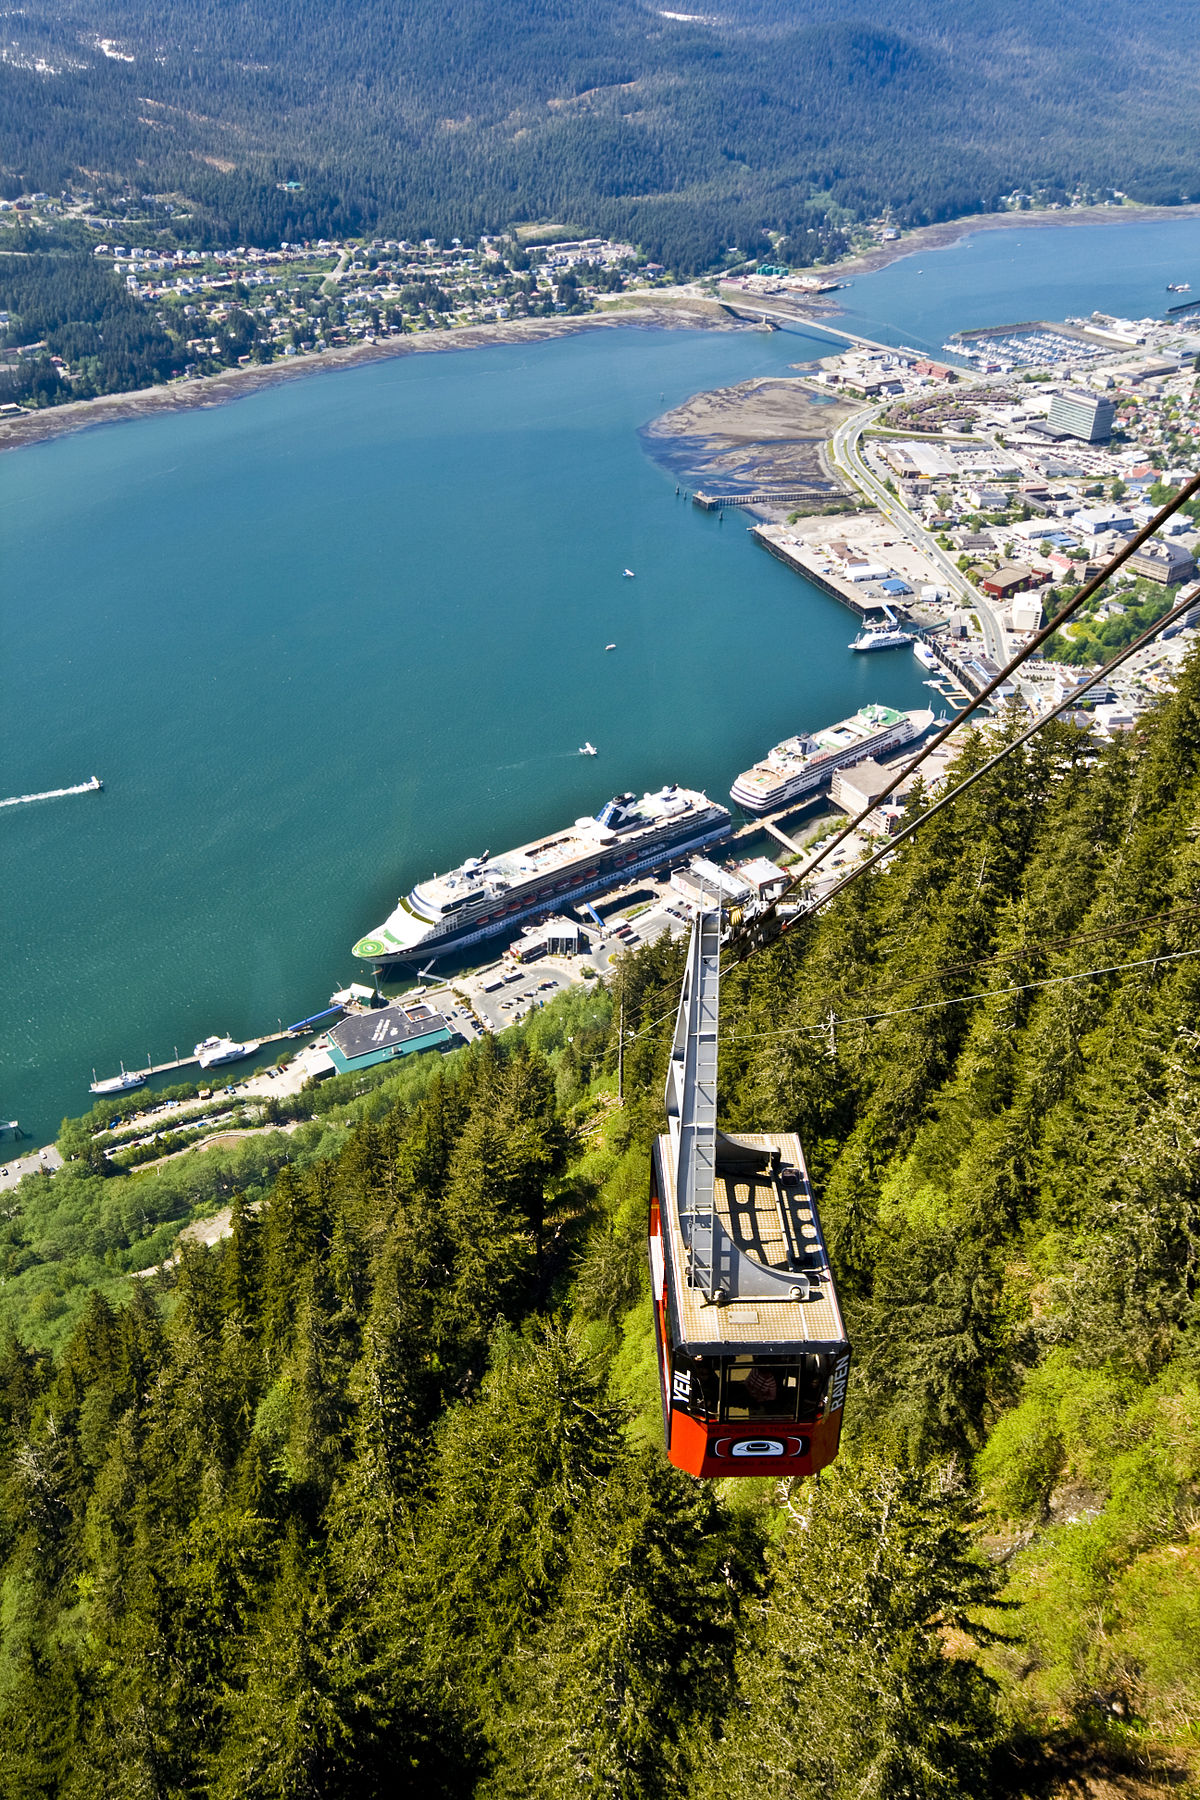 Mount roberts alaska wikipedia for How much does a hillside tram cost